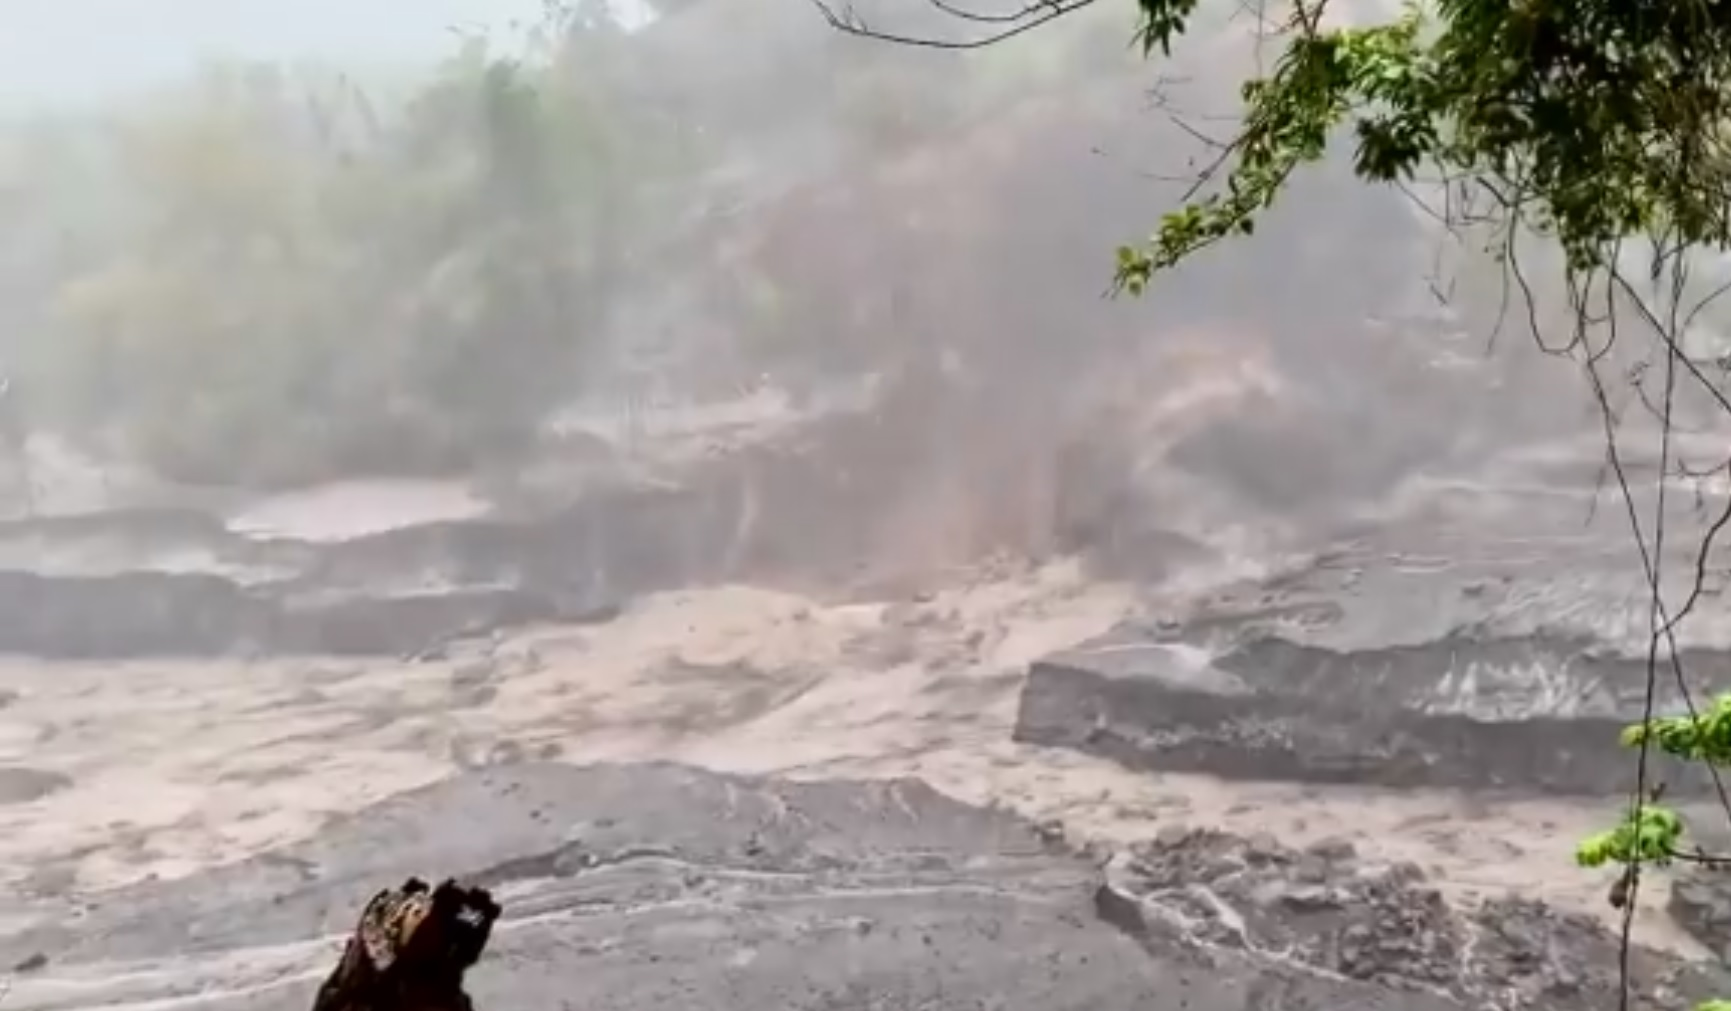 The video screenshot from lahar (mud flows) in Wallbou valley (image: @PaulCole23/twitter)